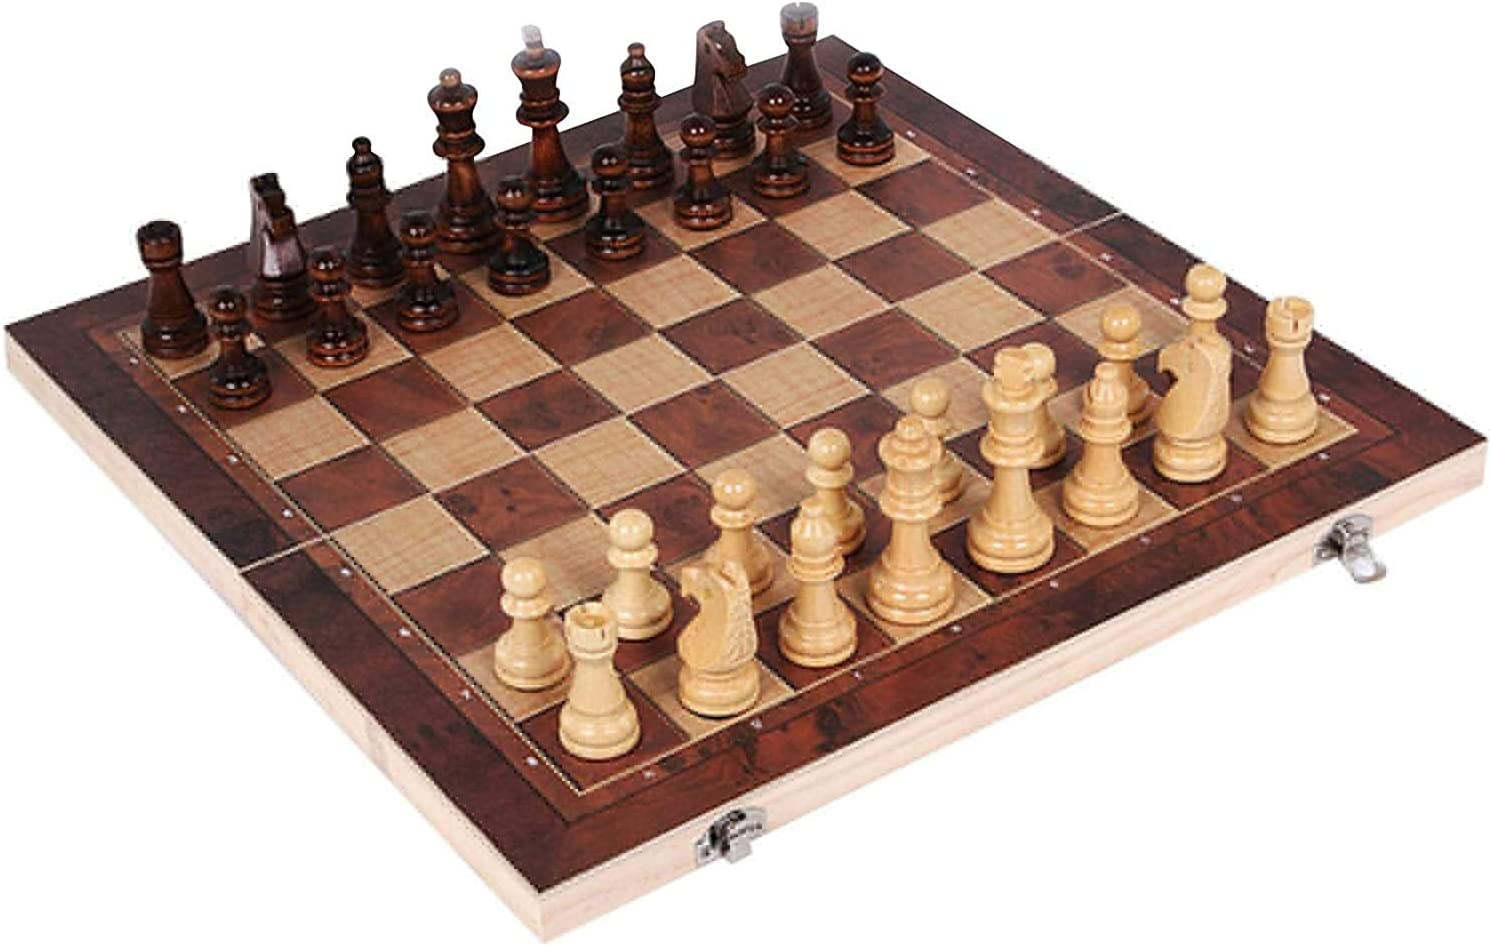 MNBV 3 Indianapolis Mall Los Angeles Mall in 1 Chess Group Game Backgammon Checkers Wooden In